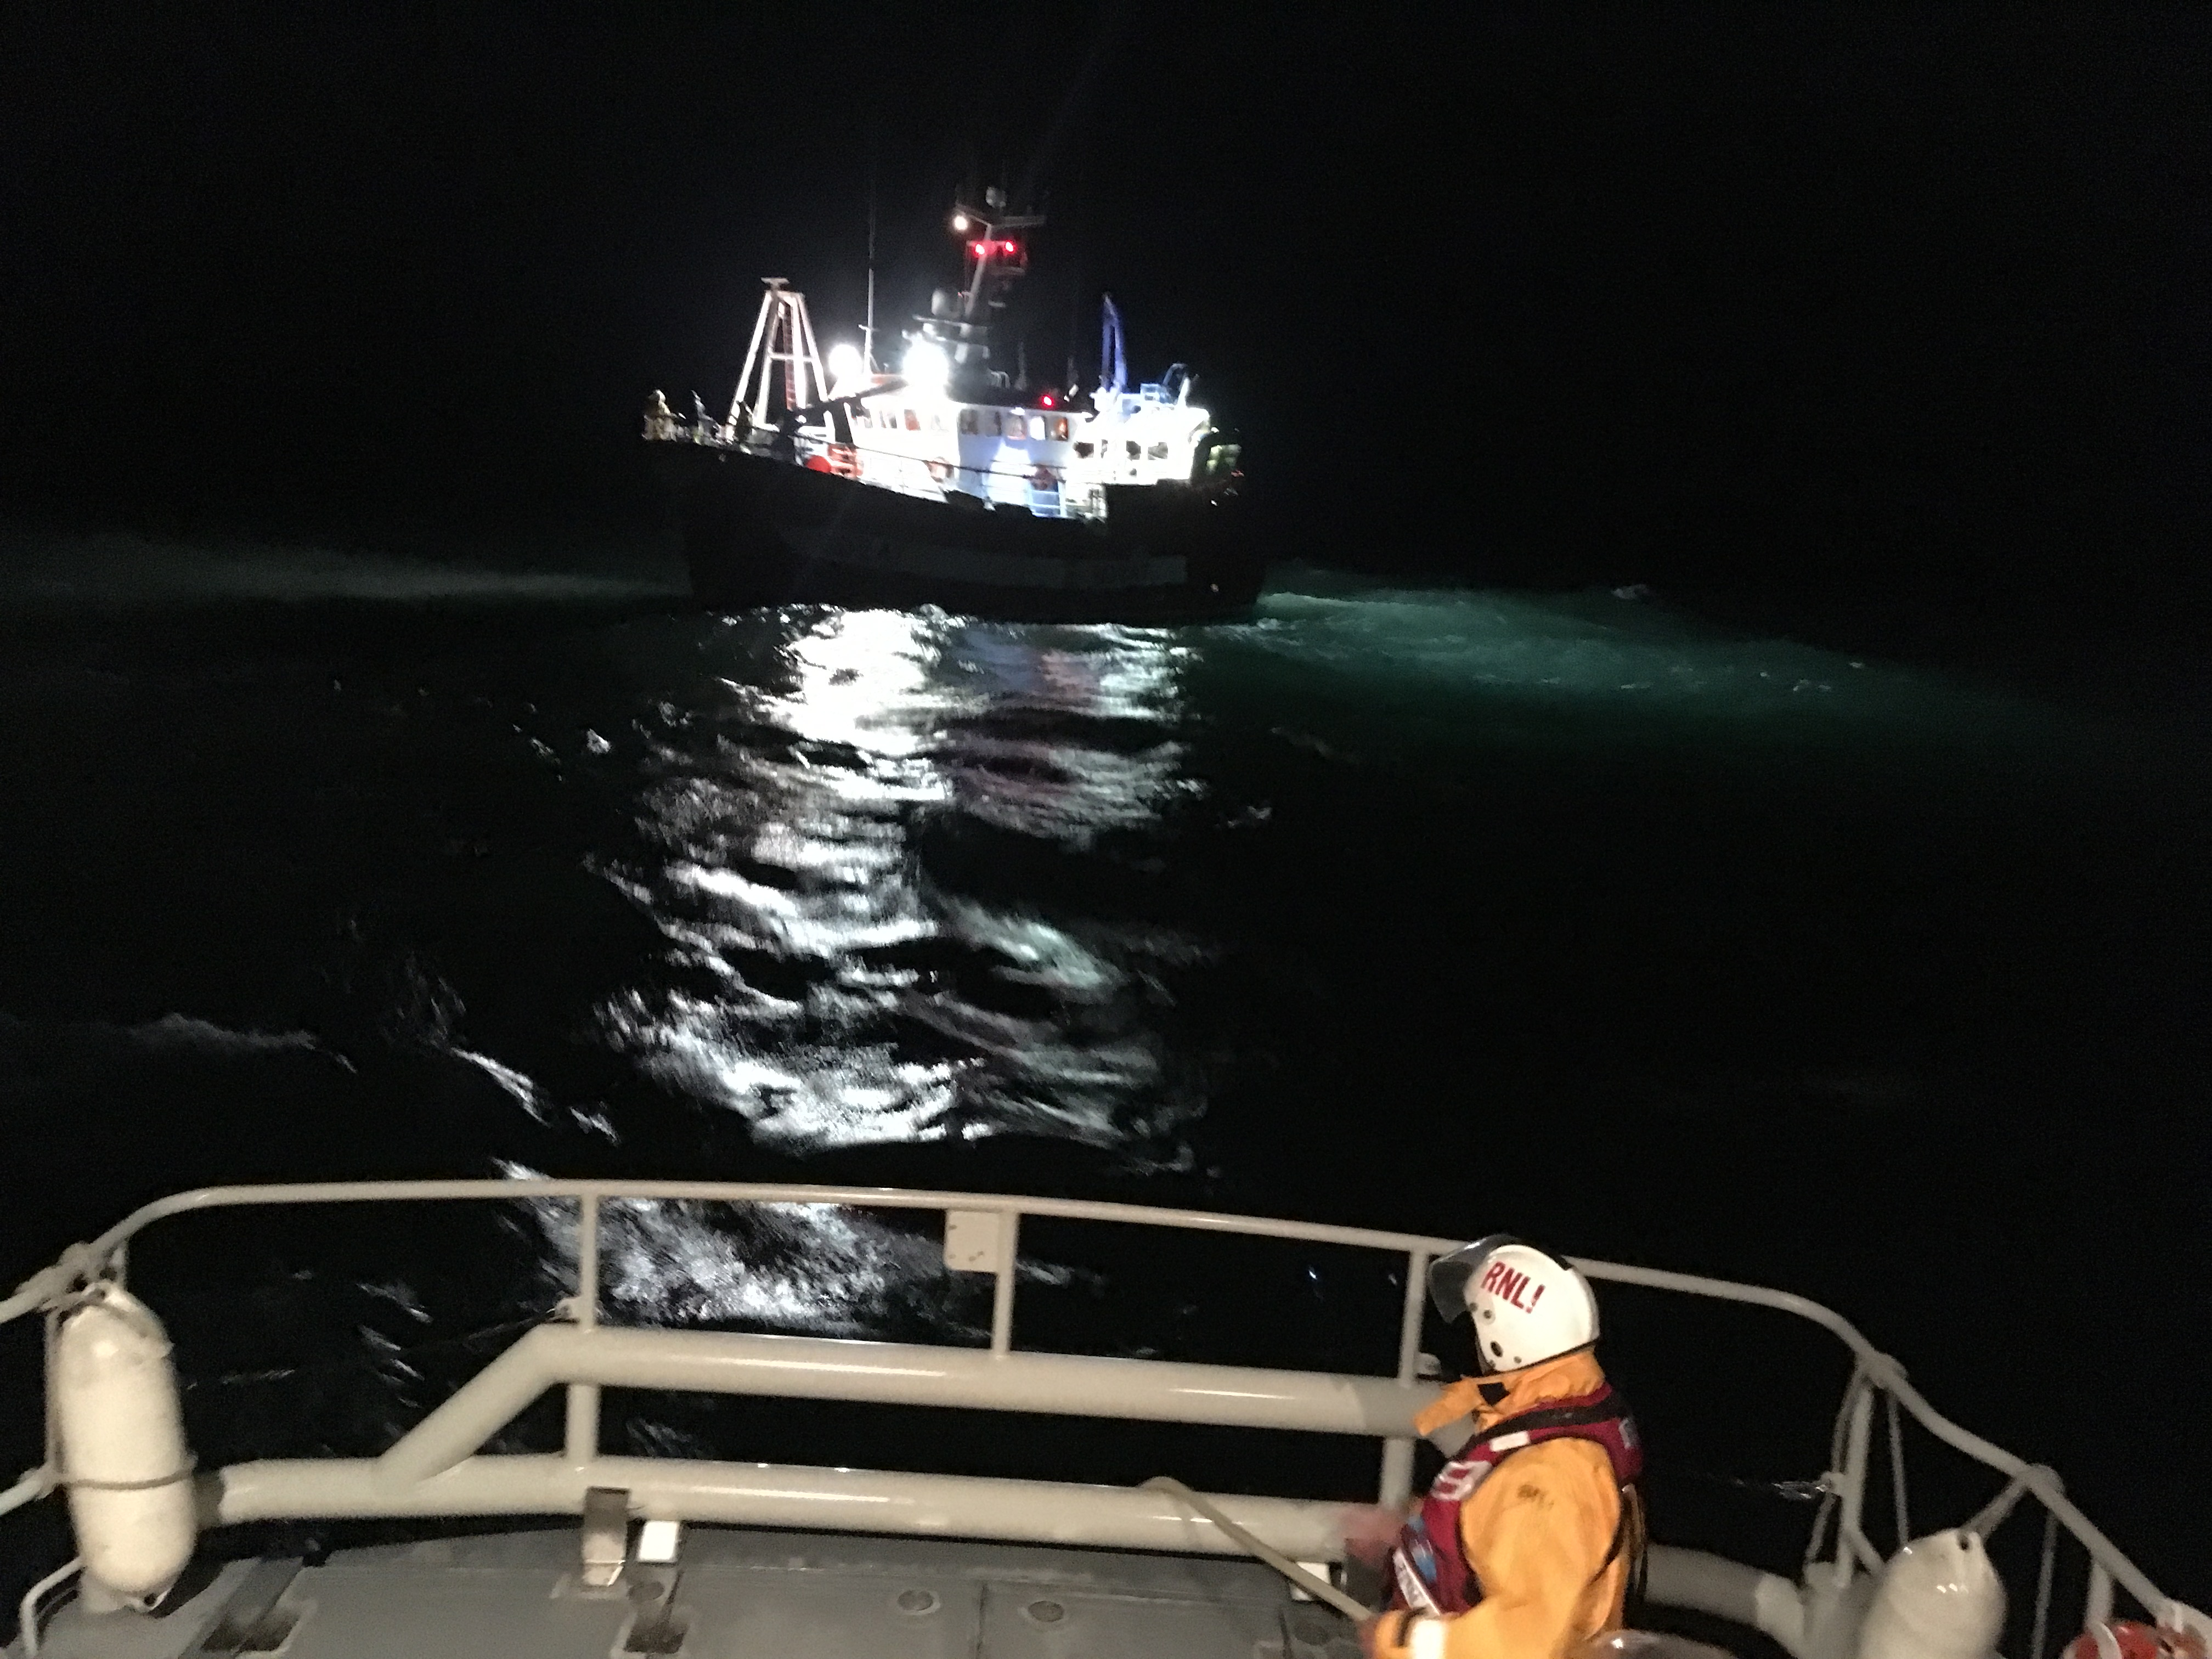 The Eastbourne lifeboat assists the fishing vessel.